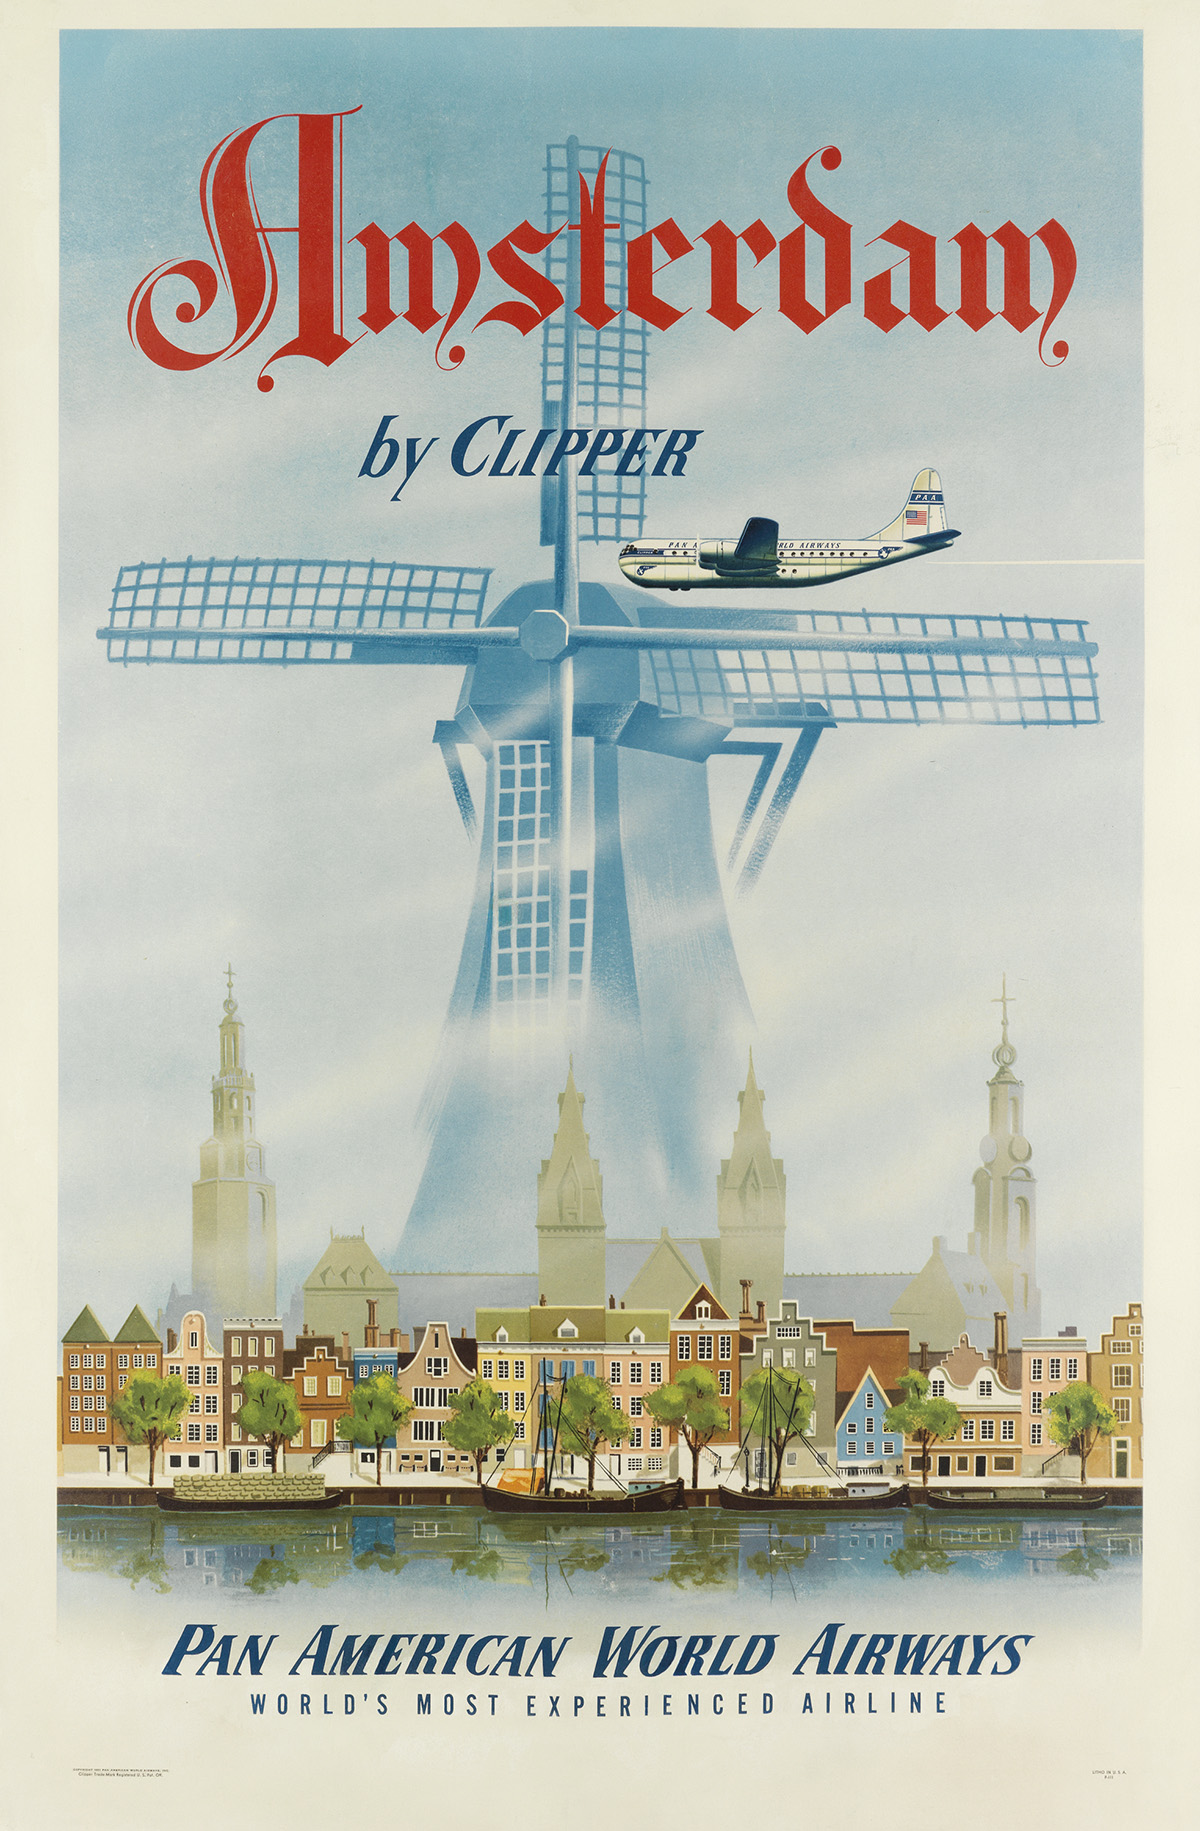 DESIGNER-UNKNOWN-AMSTERDAM-BY-CLIPPER--PAN-AMERICAN-WORLD-AI